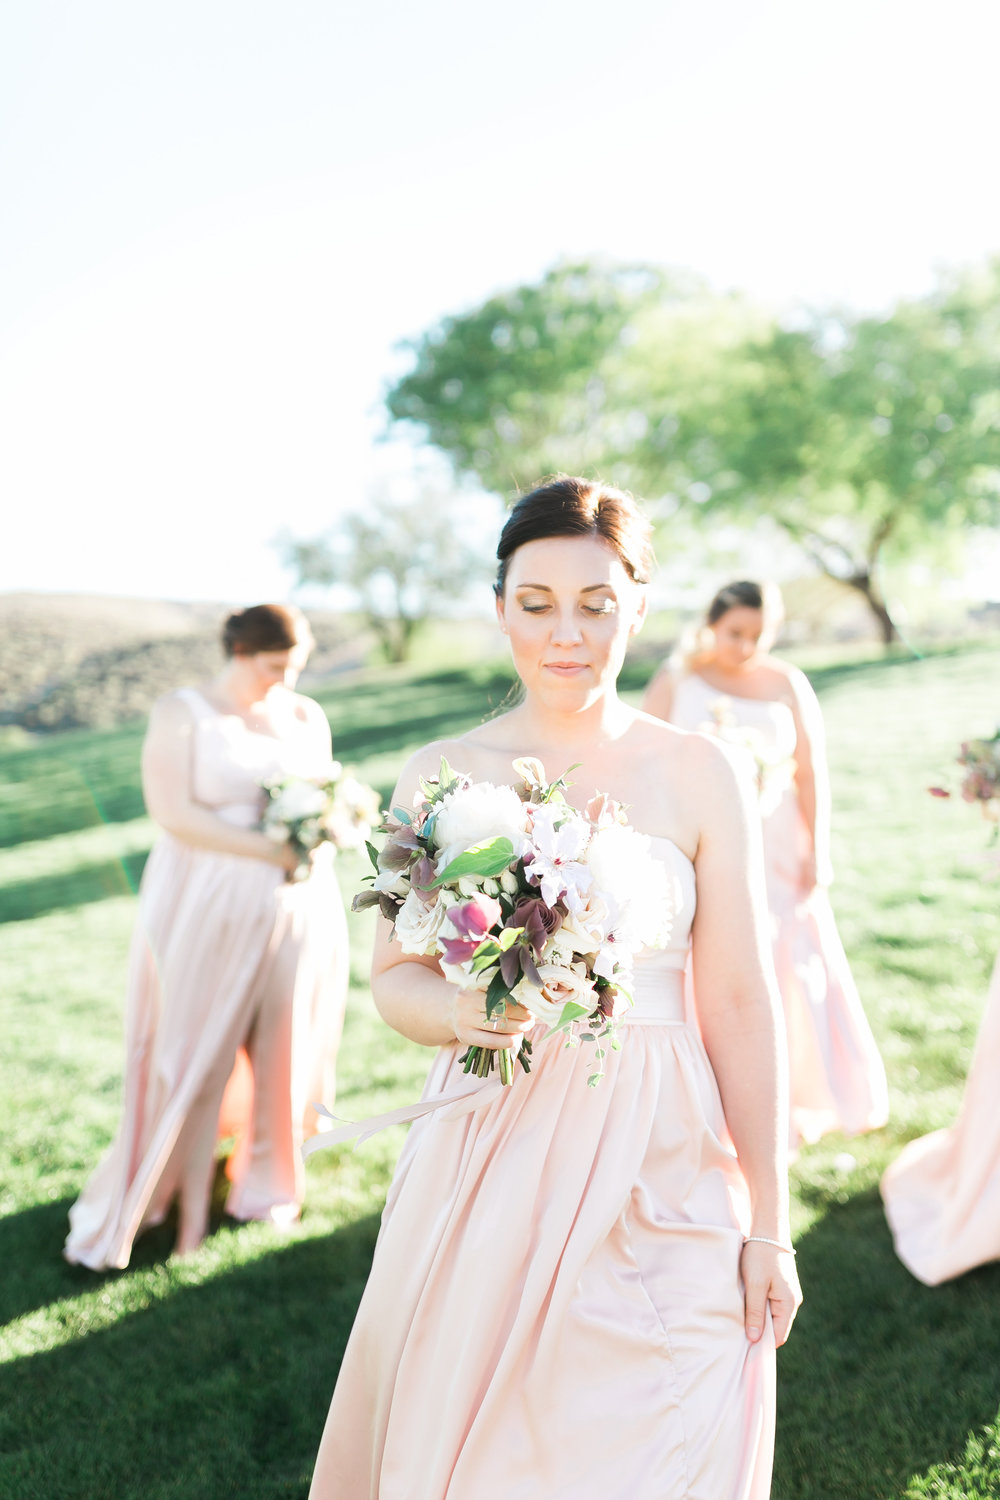 Colorado Wedding Florist Layers of Lovely. Blush bridesmaids dresses. Spring Wedding Florals.